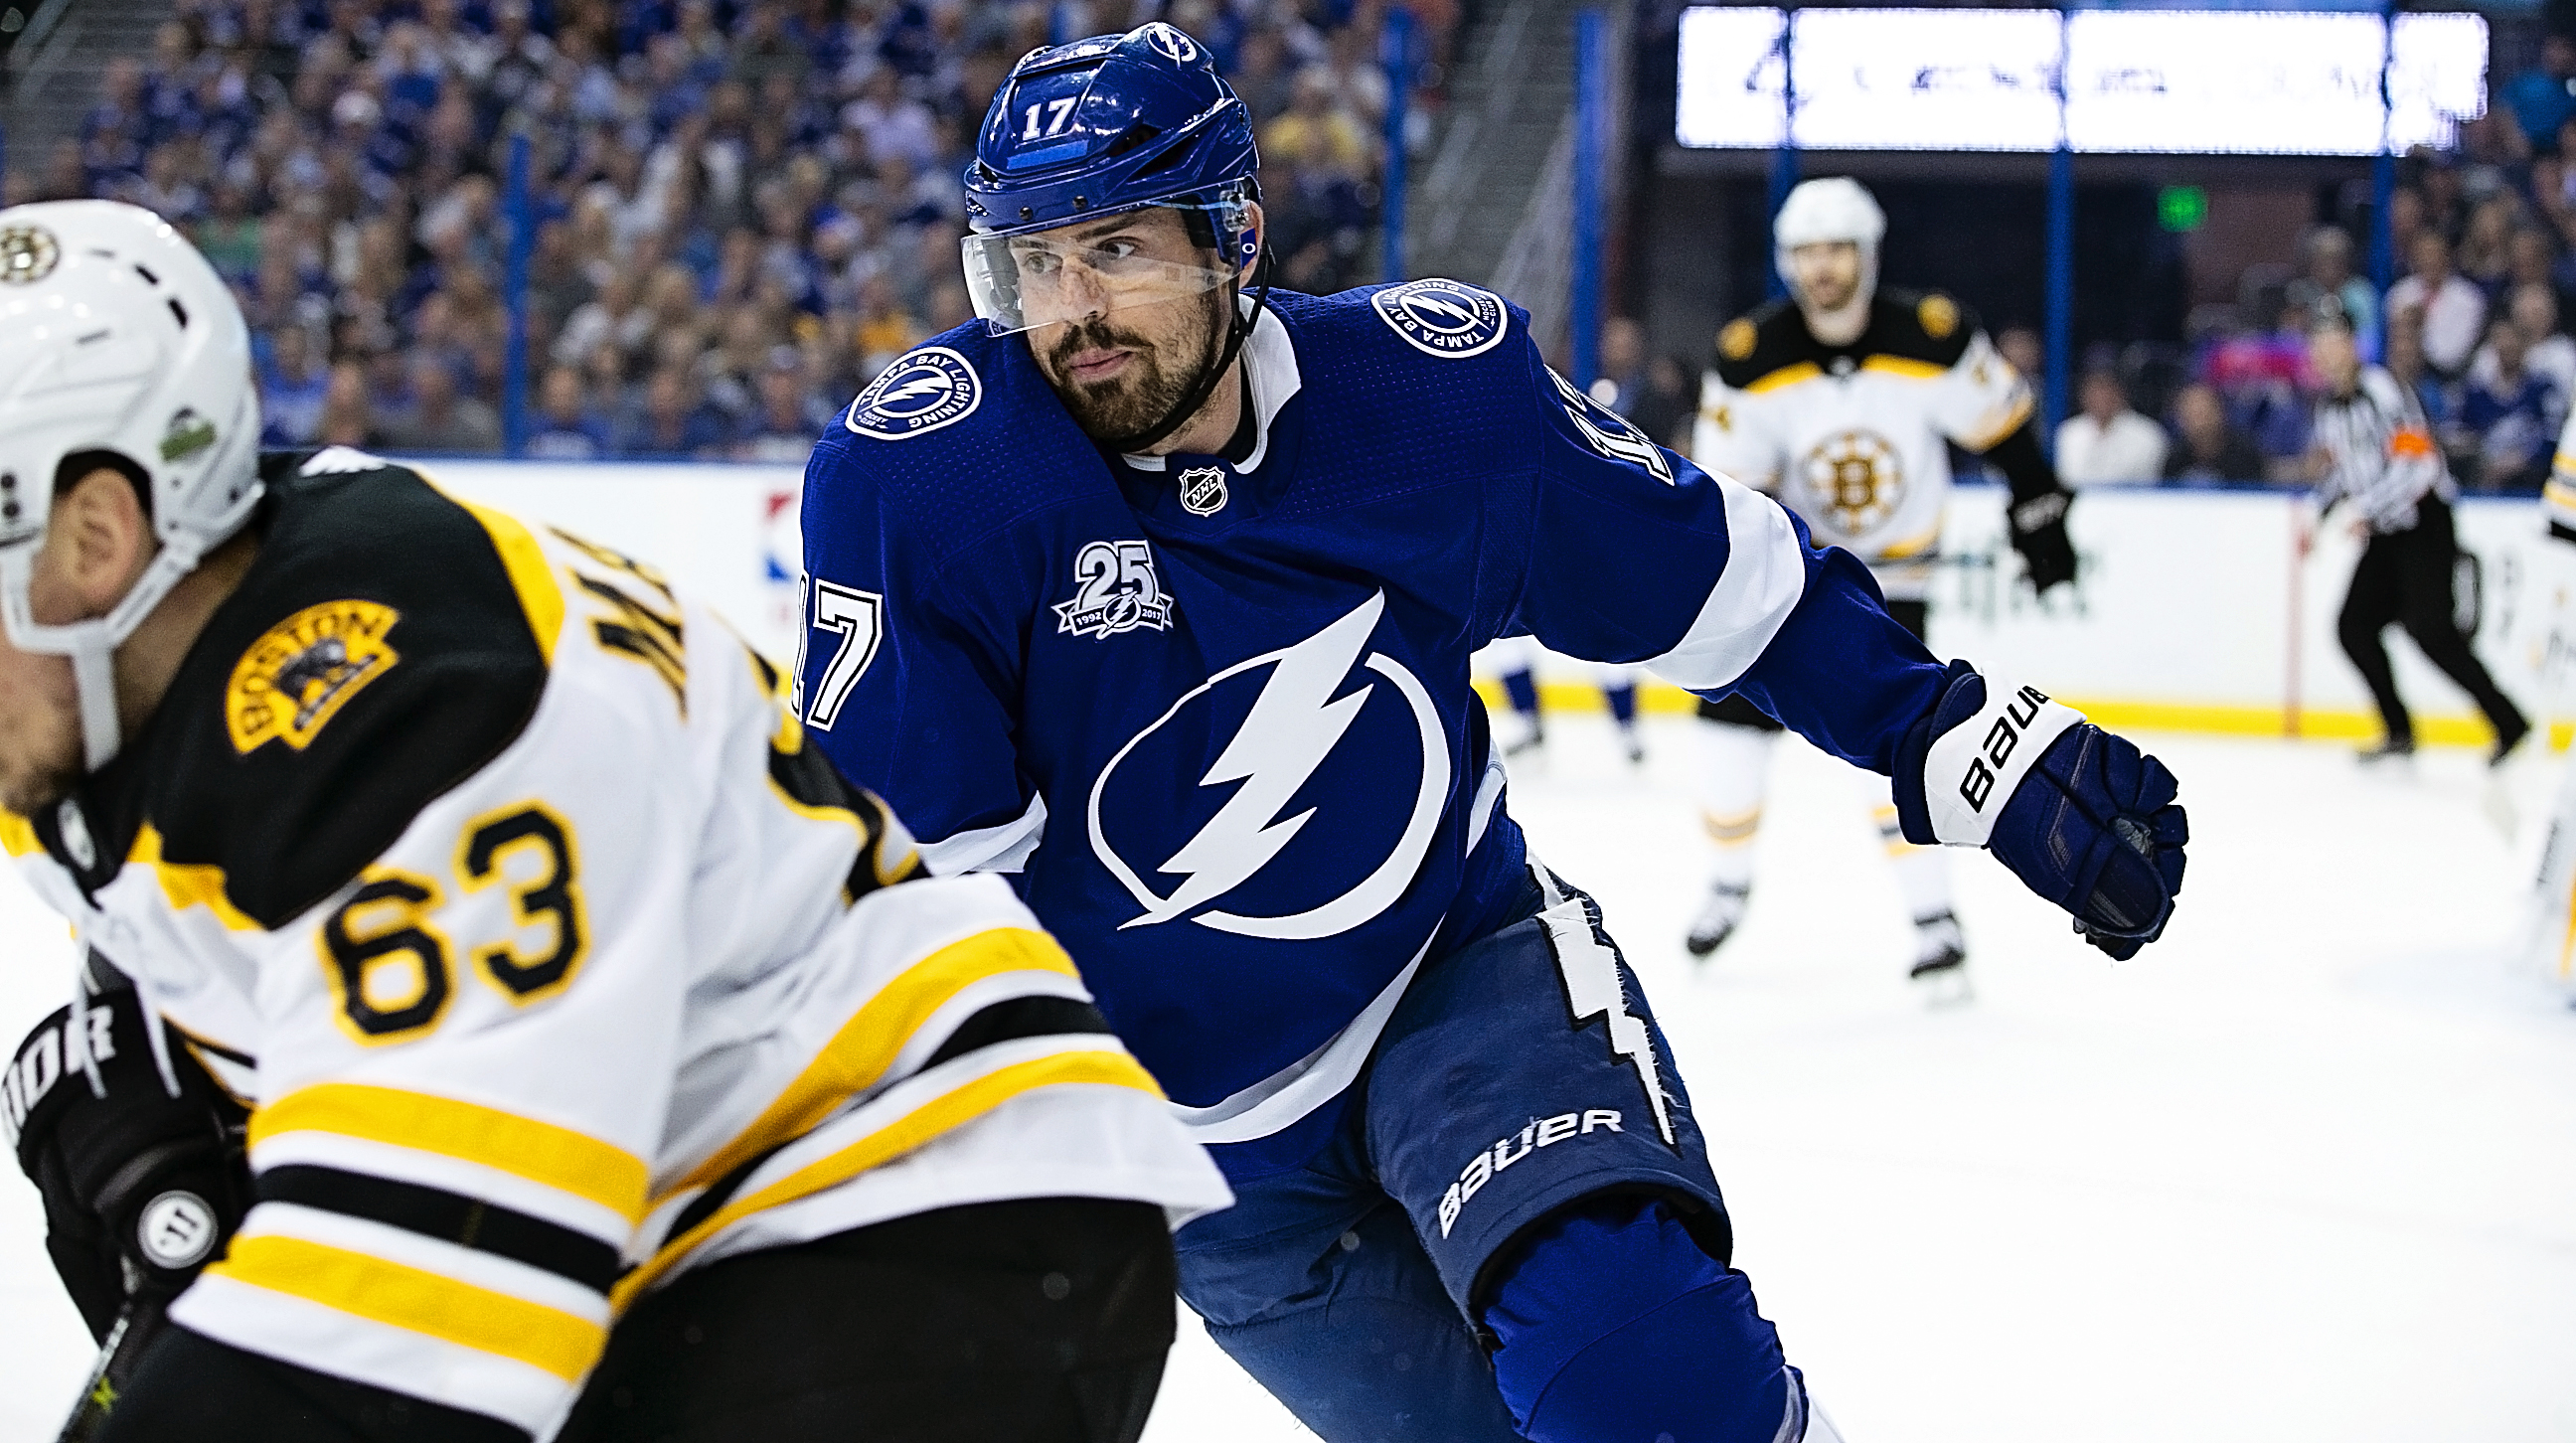 Killorn battles for position./CARMEN MANDATO